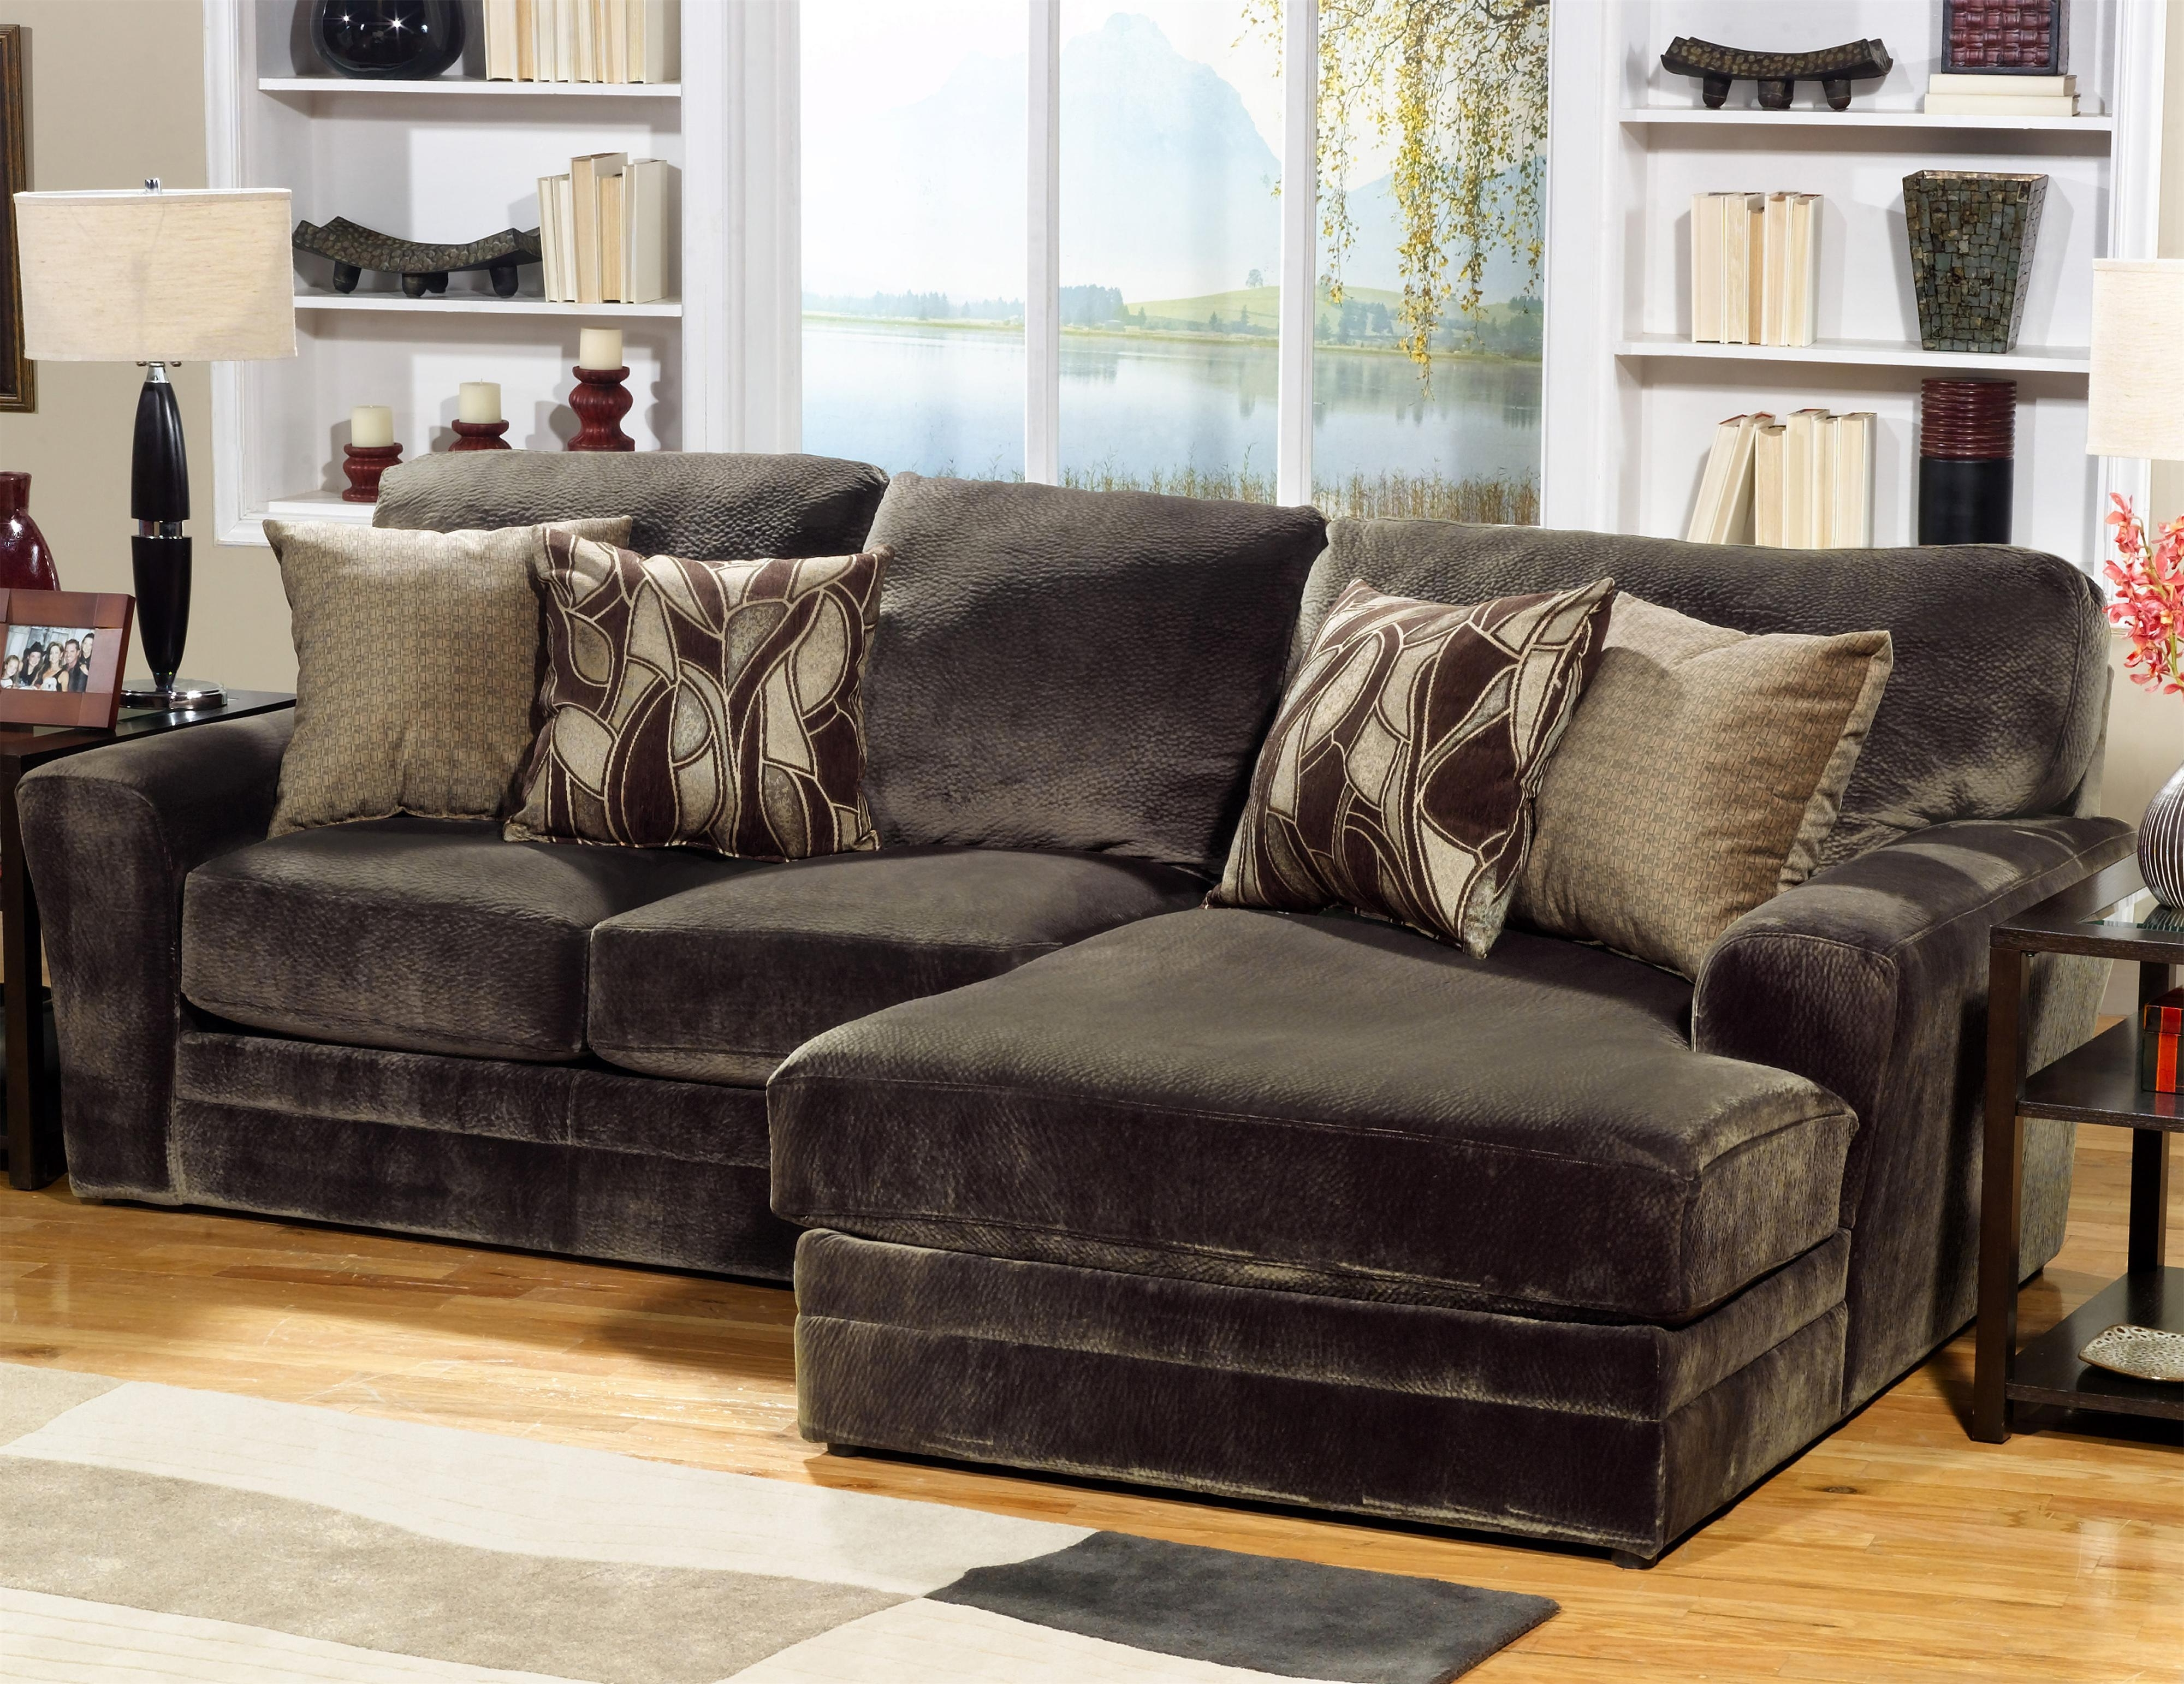 Allthingschula Intended For 2 Piece Sectionals With Chaise Lounge (View 4 of 15)